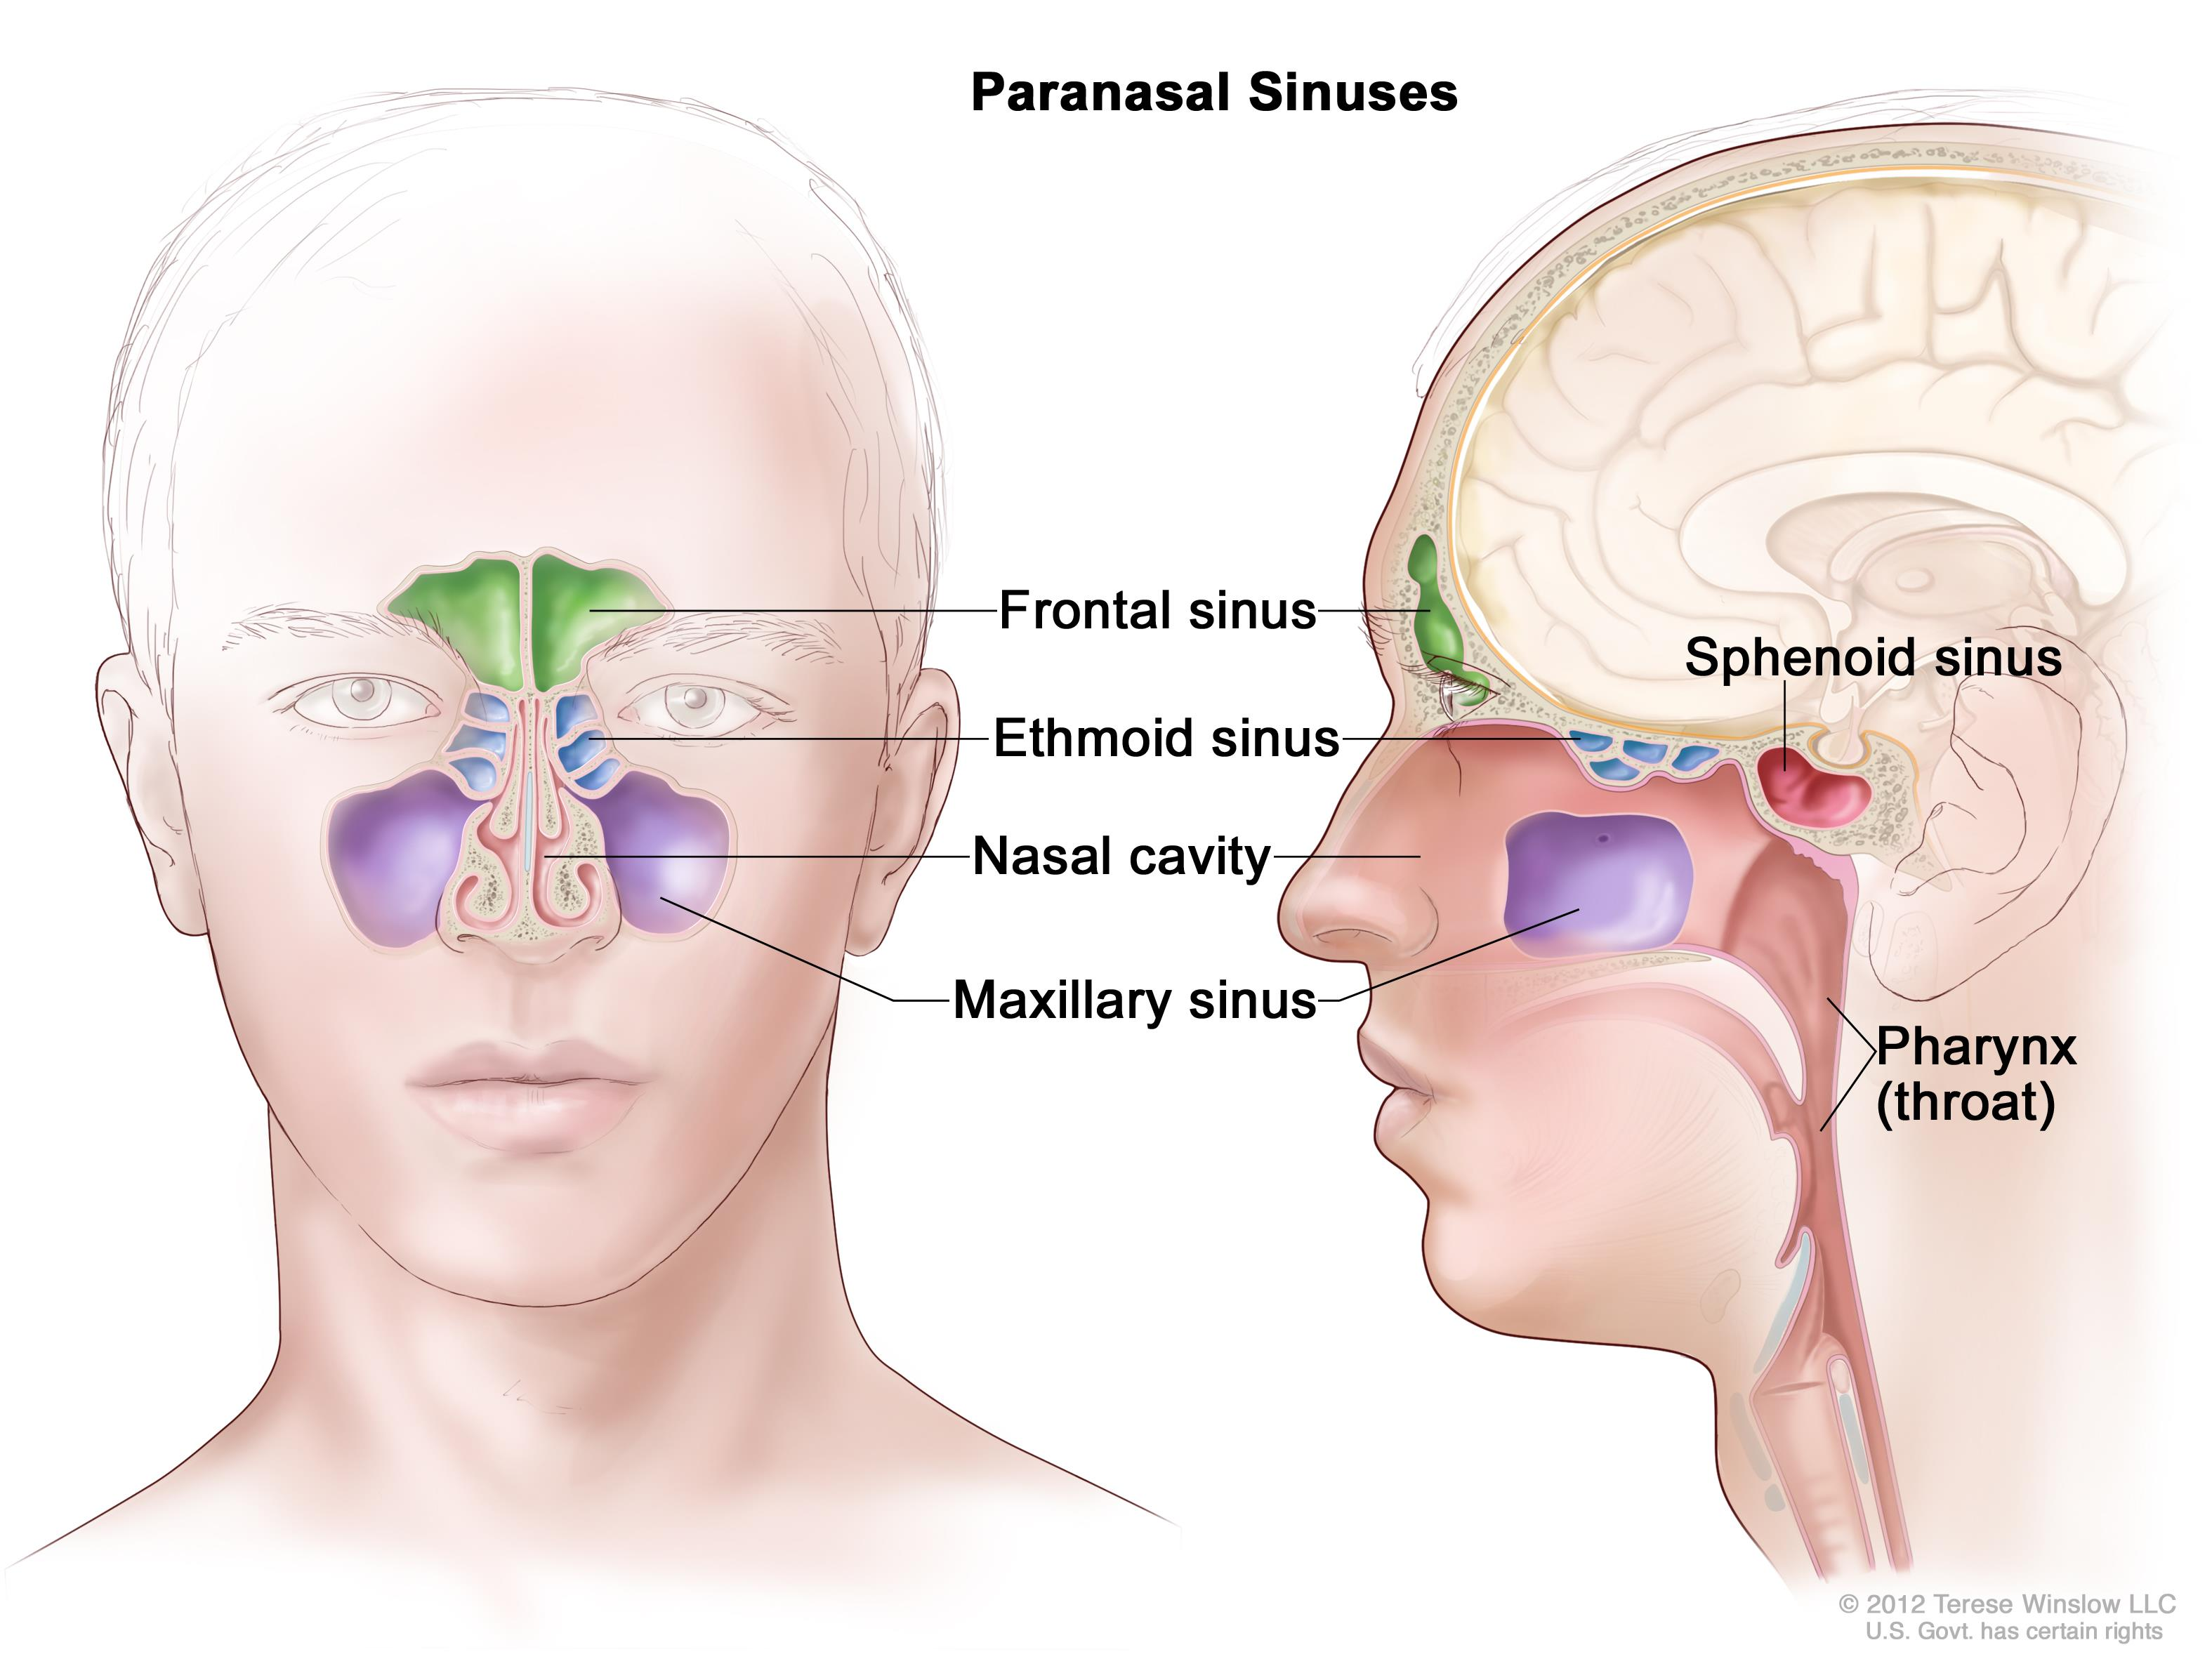 Paranasal Sinus And Nasal Cavity Cancer Treatment Pdq Patient